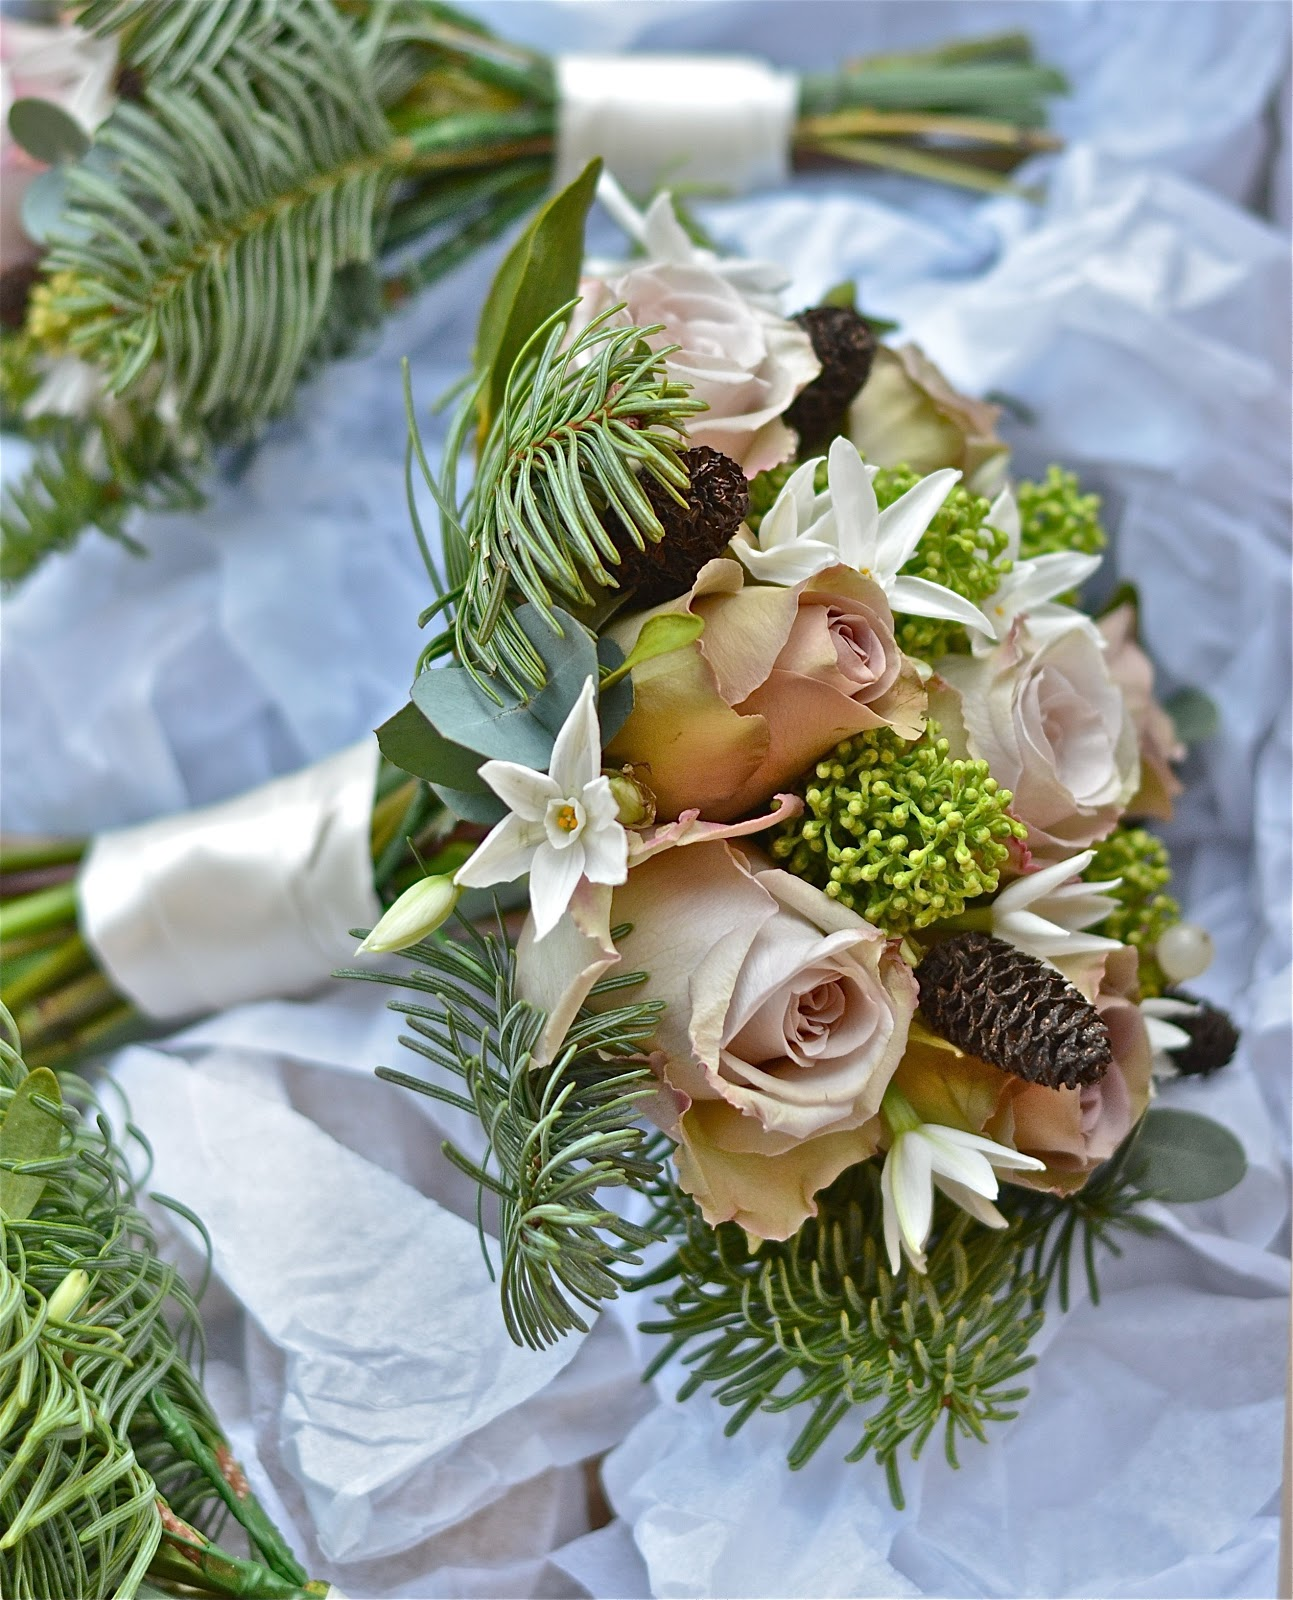 Wedding Flowers Blog: Jen's December Wedding Flowers